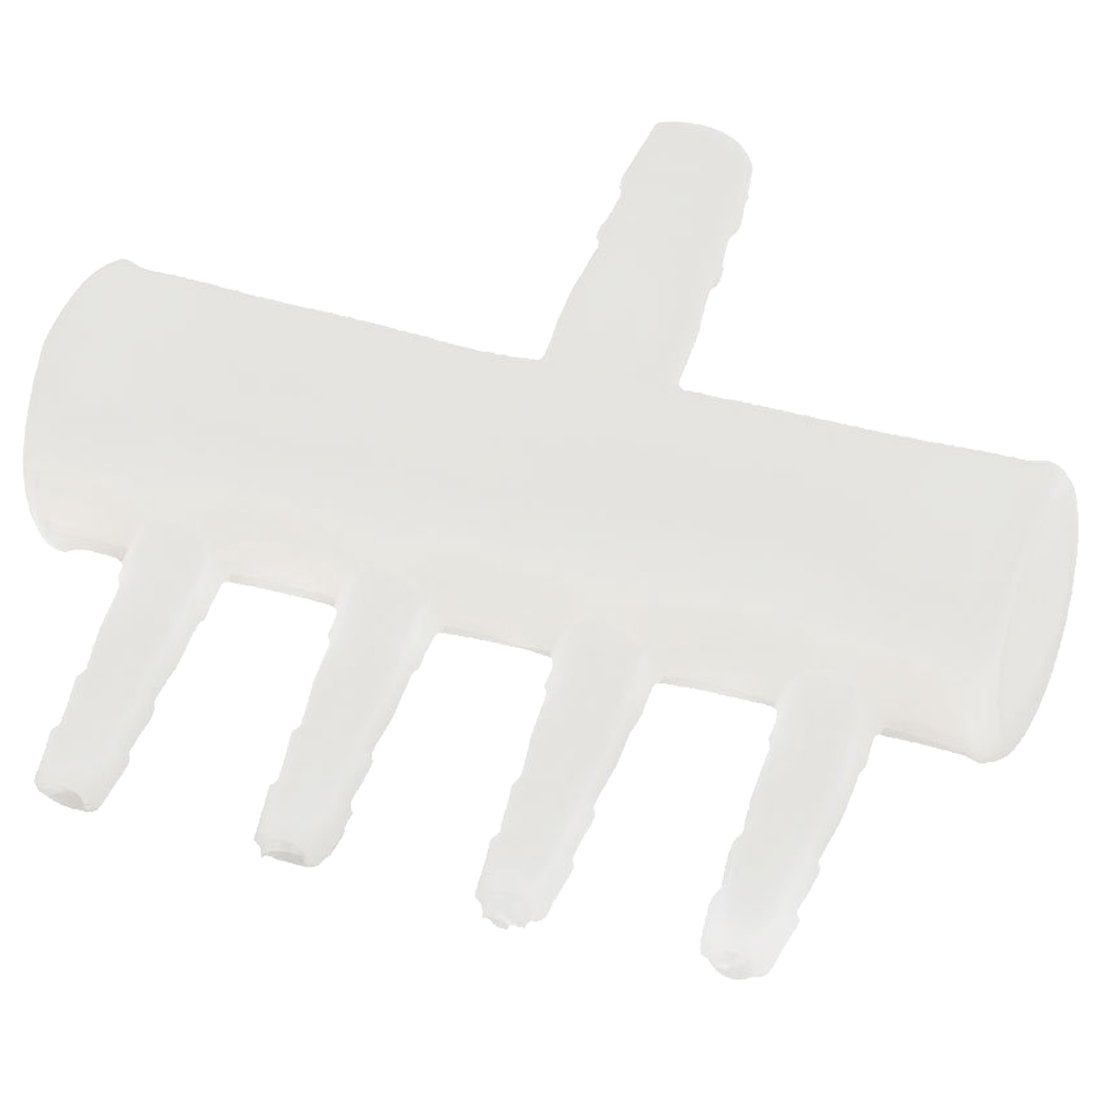 SODIAL(R) Plastic 4 Way Aquarium Oxygen Tube Fitting Splitter Manifold Tap Valve